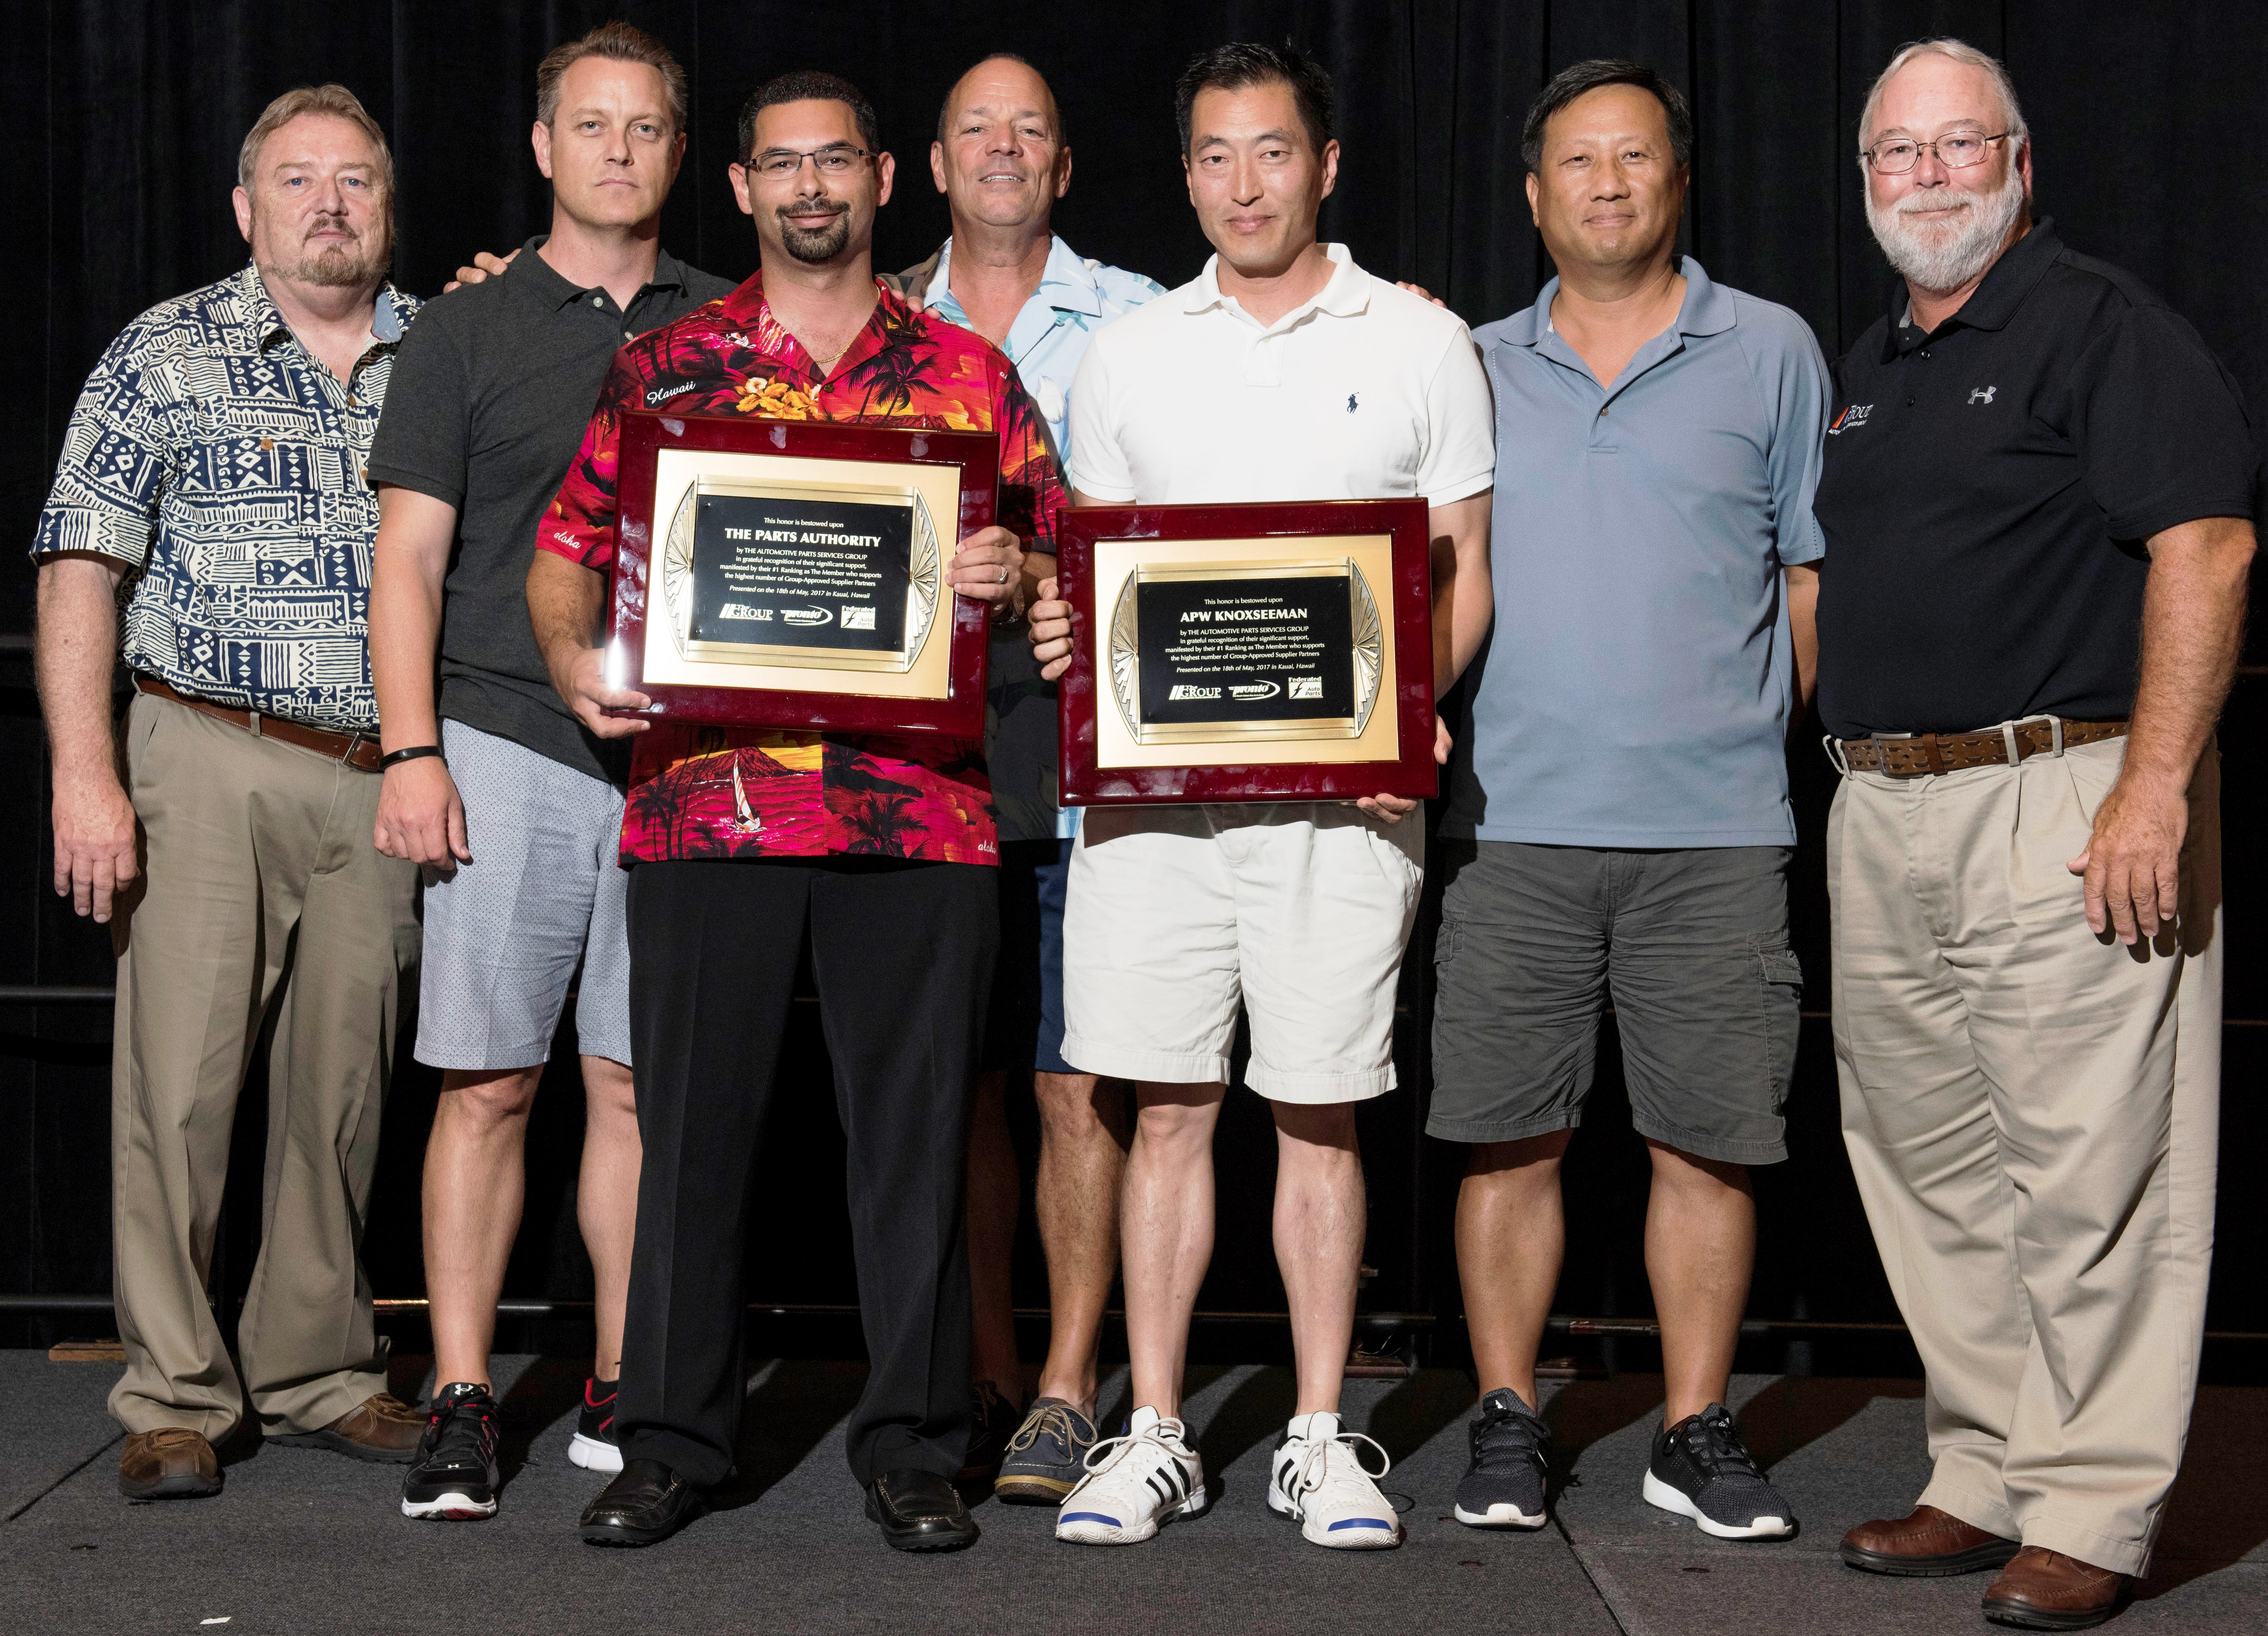 The Group Recognizes Two Members for Top Vendor Support